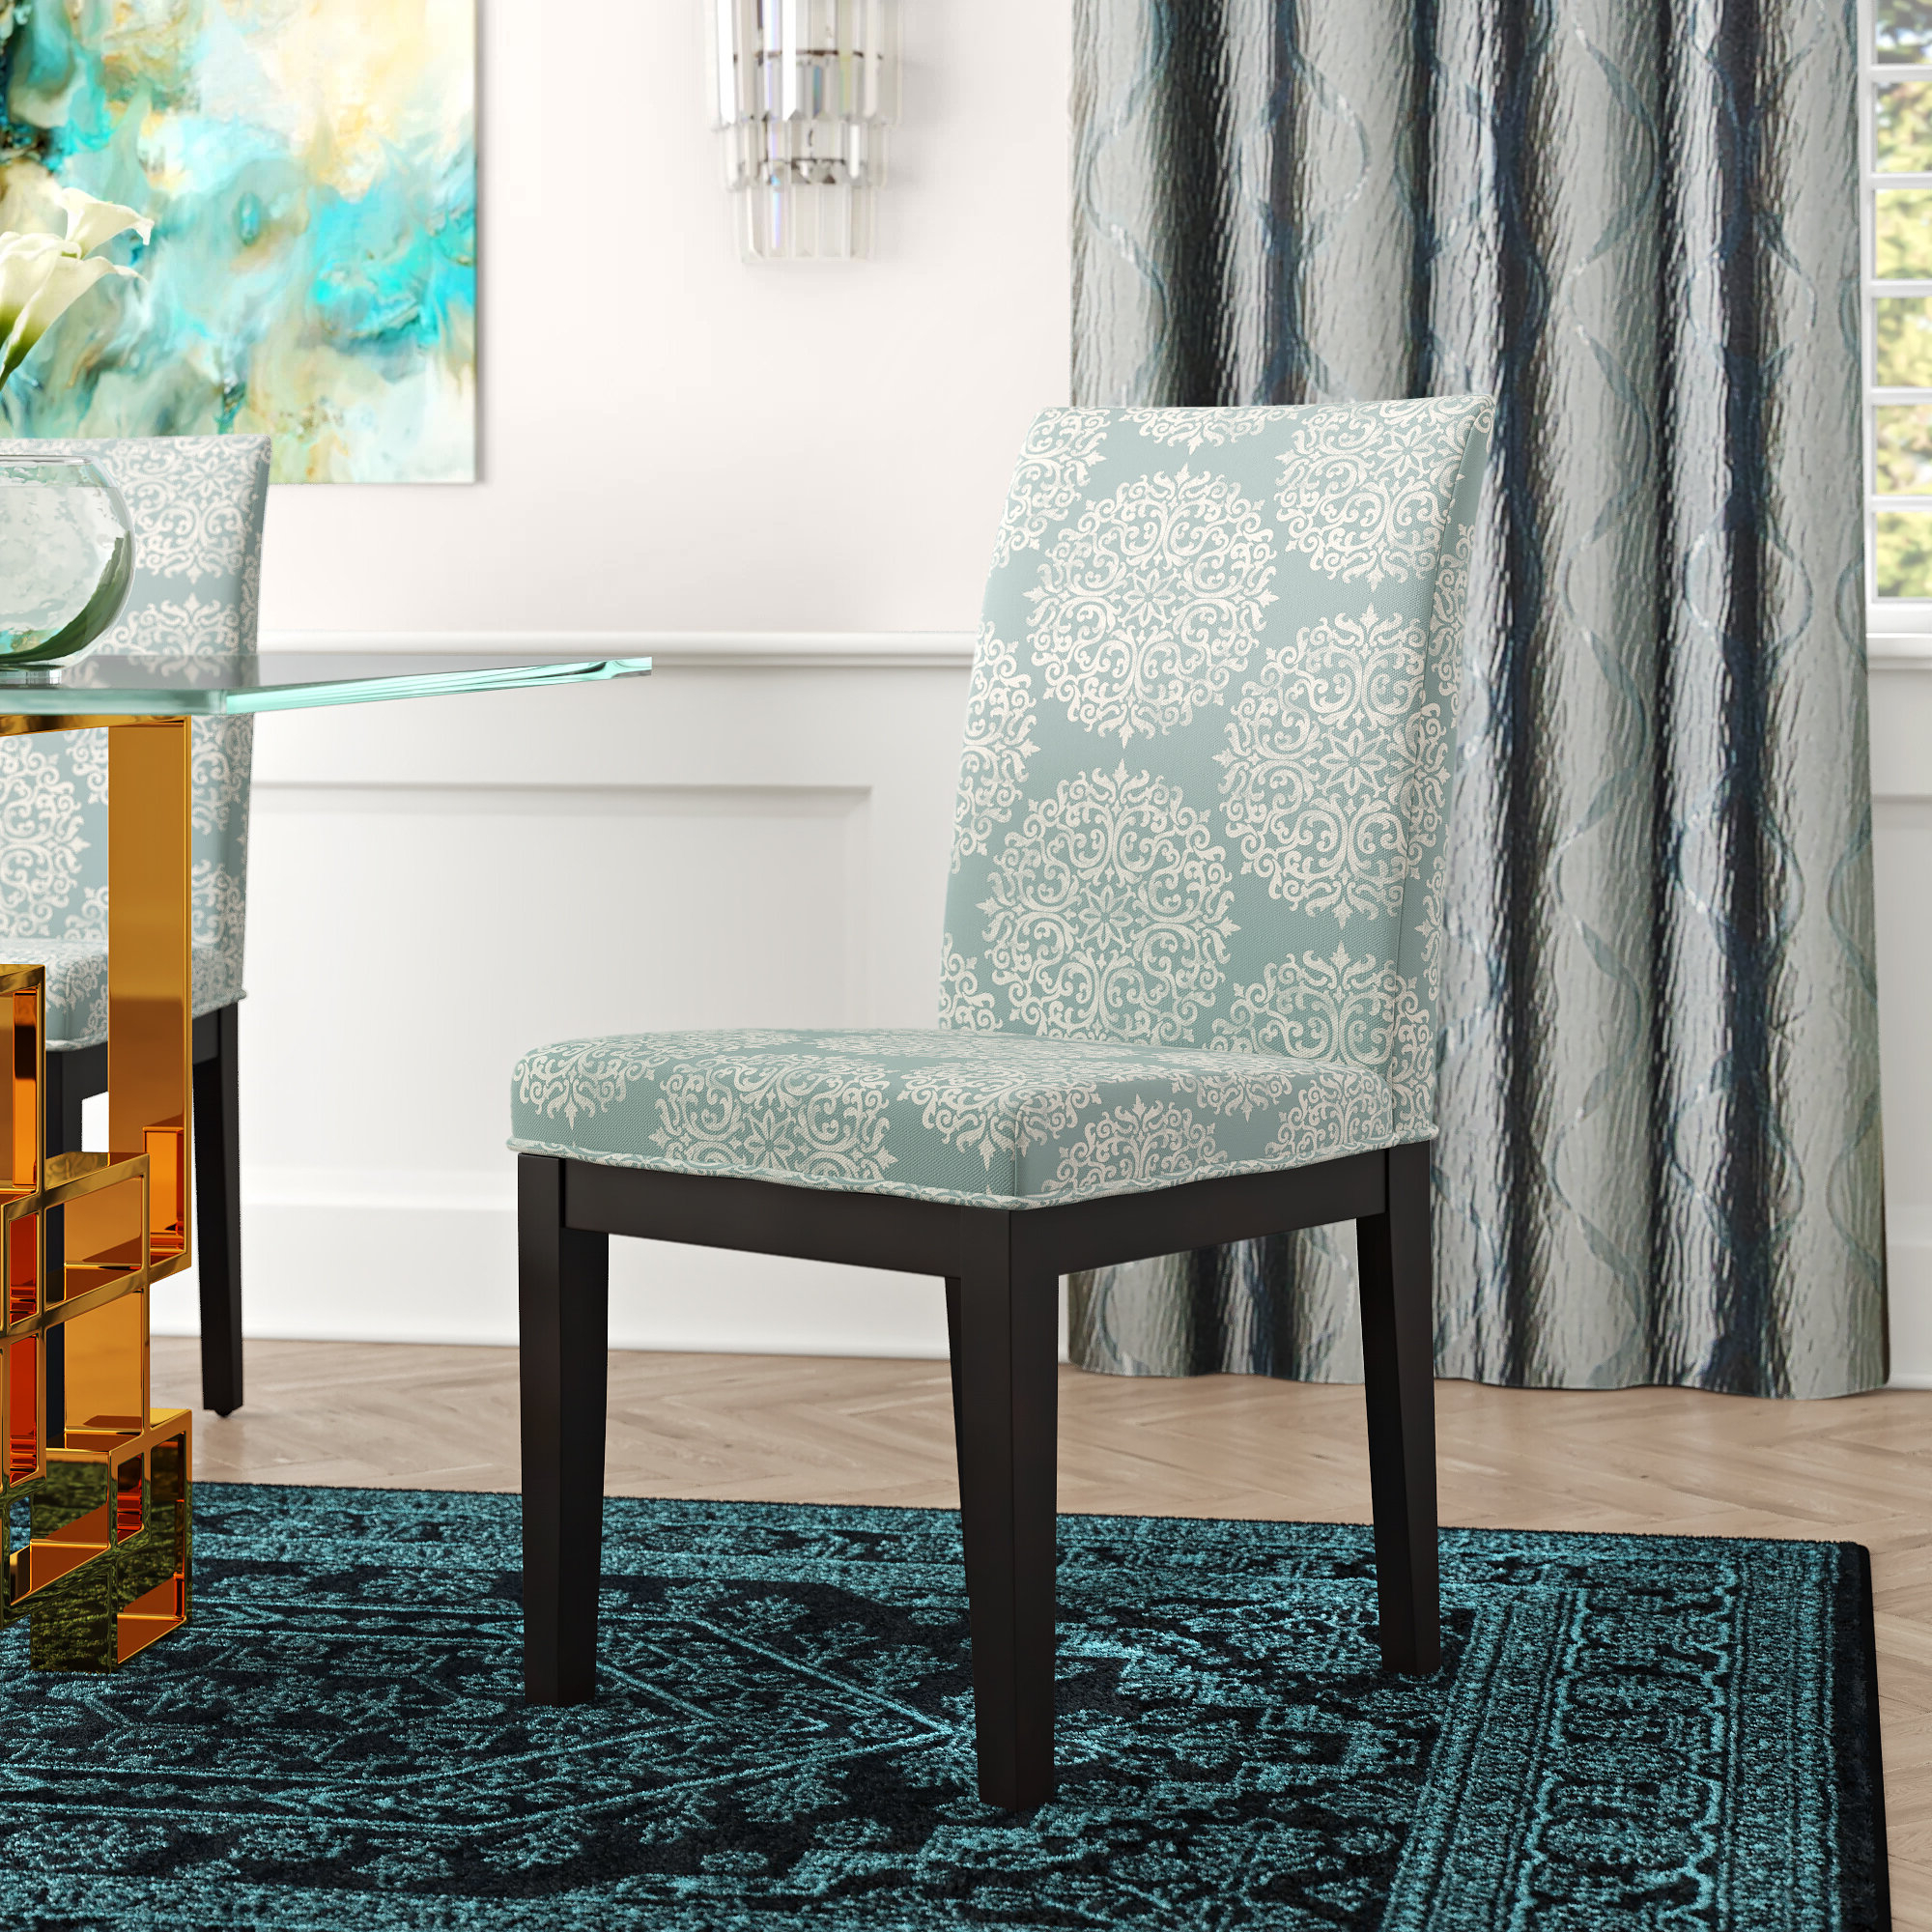 Ansby Barrel Chairs With Regard To Most Current Floral Accent Chairs Under $150 You'll Love In (View 10 of 20)